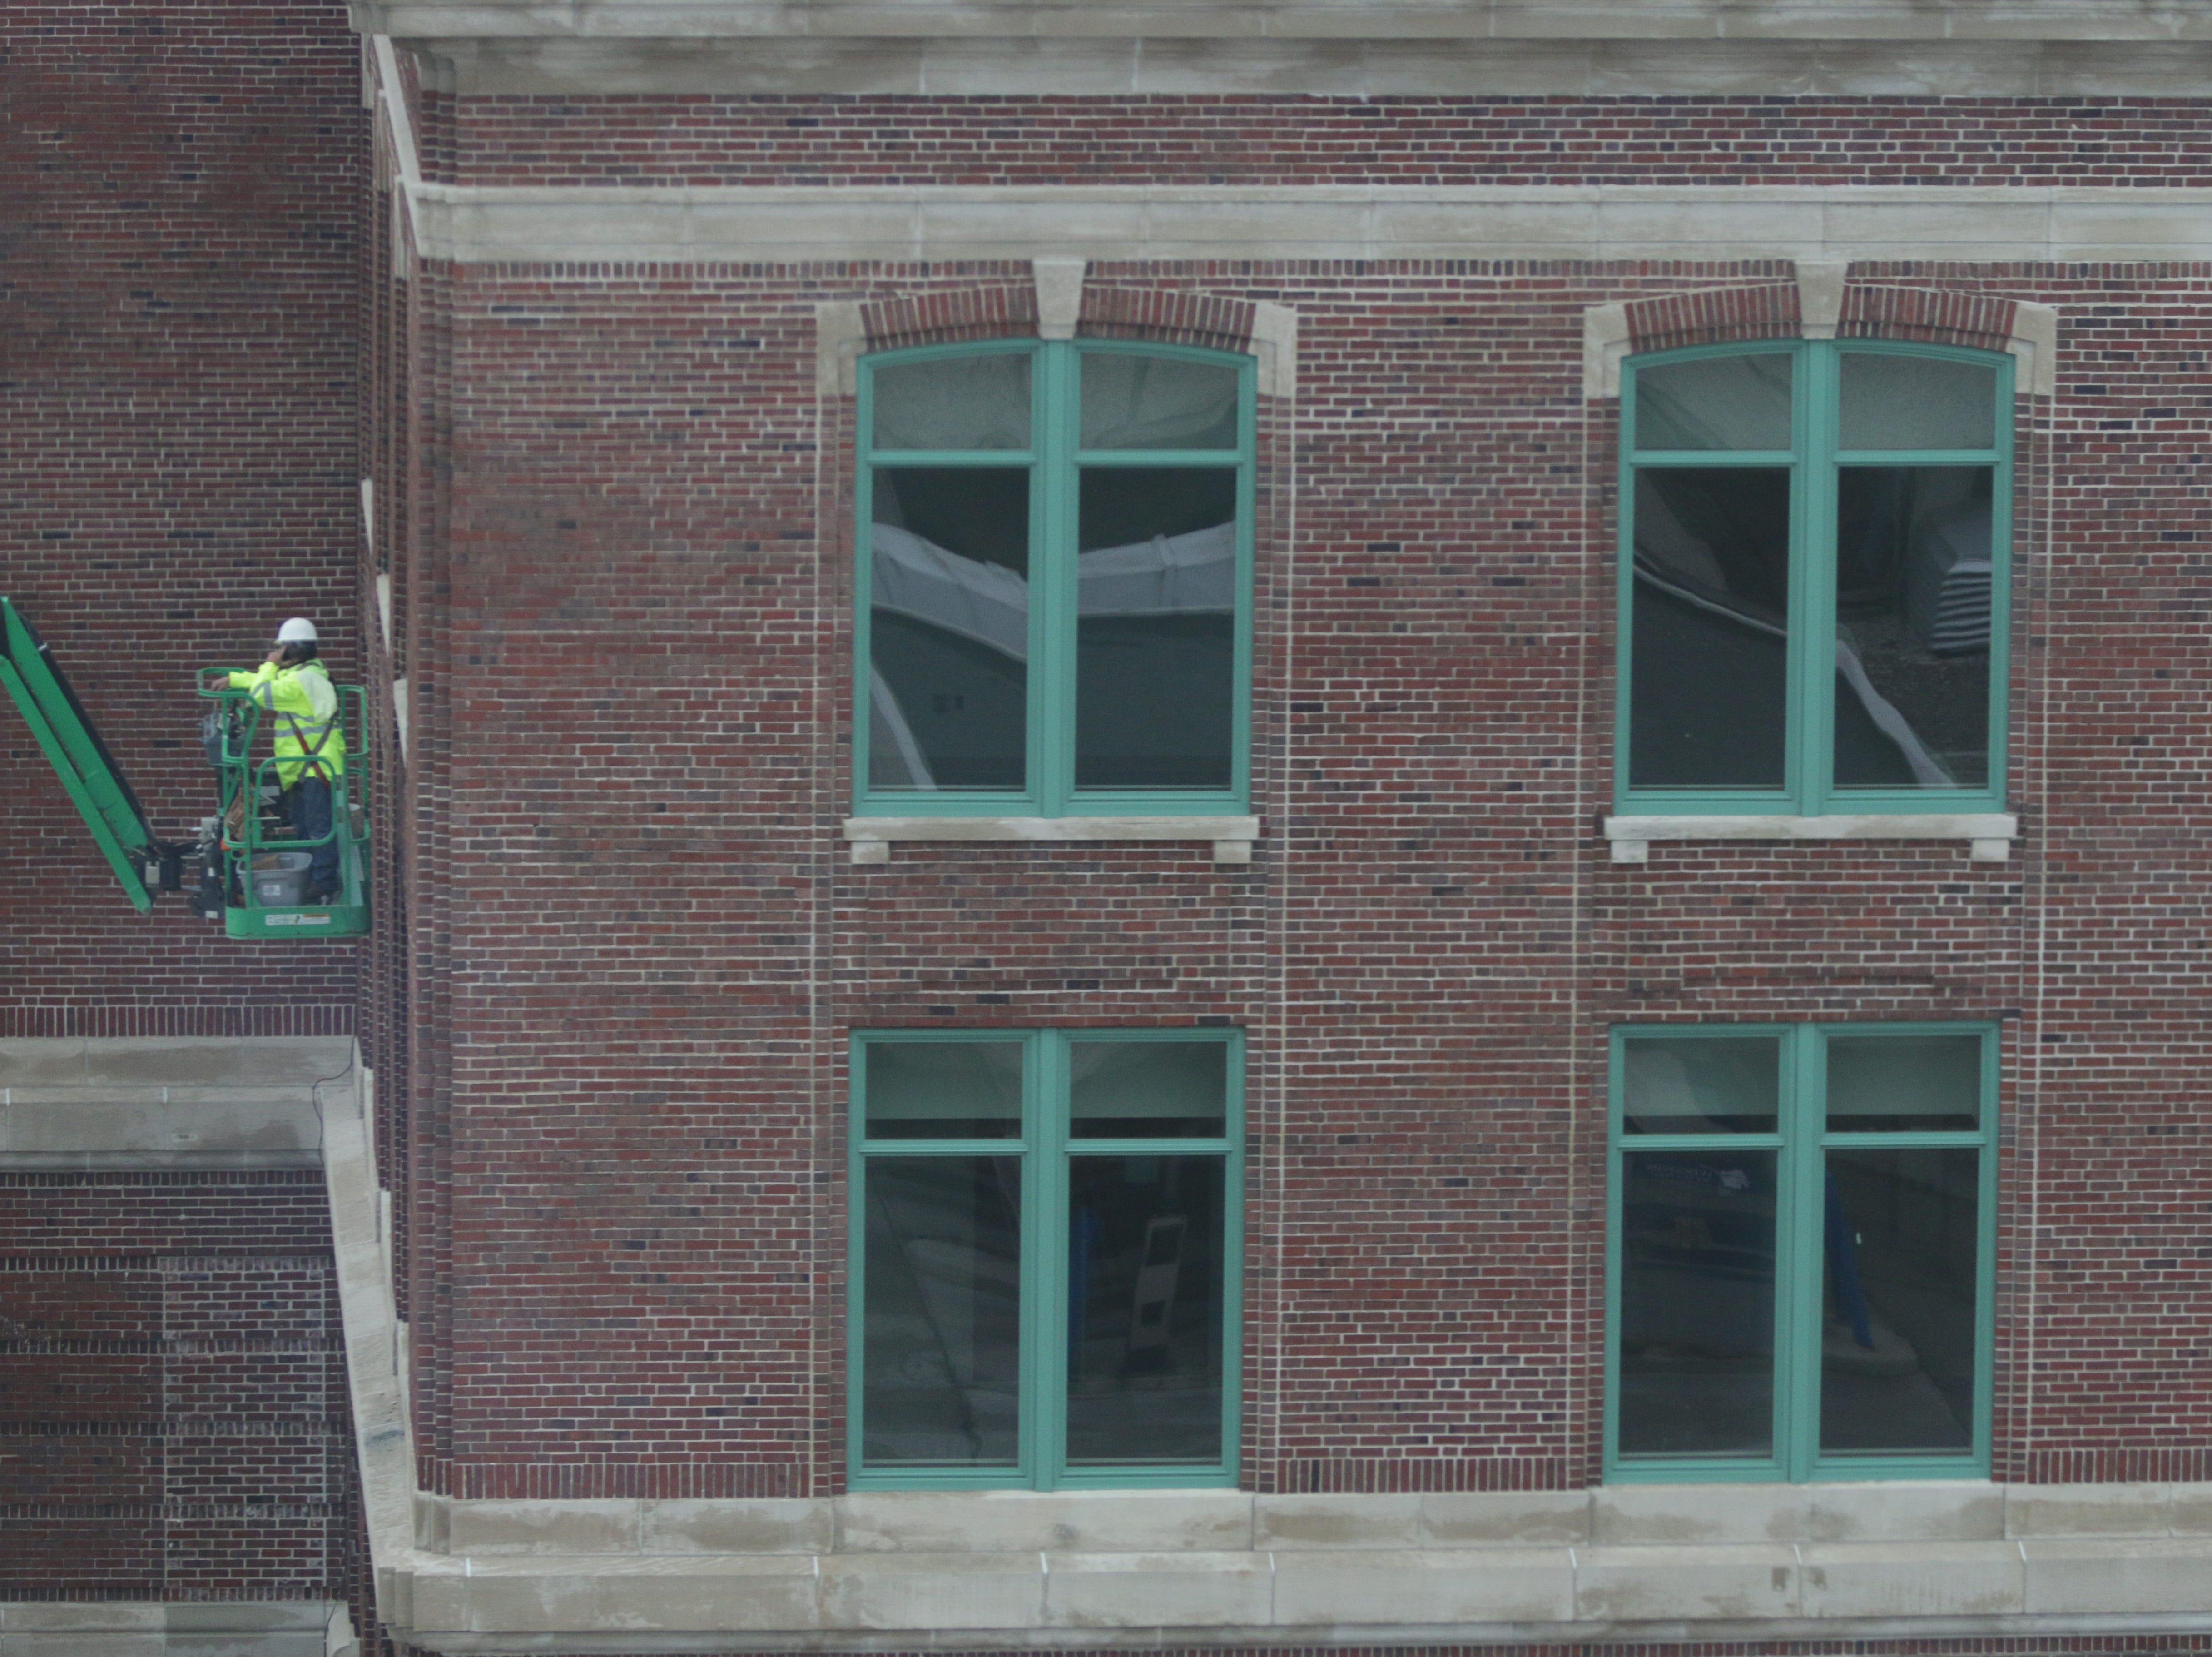 A view of the construction on the rebuilding of the Sheboygan City Hall as seen, Wednesday, May 1, 2019, in Sheboygan, Wis.